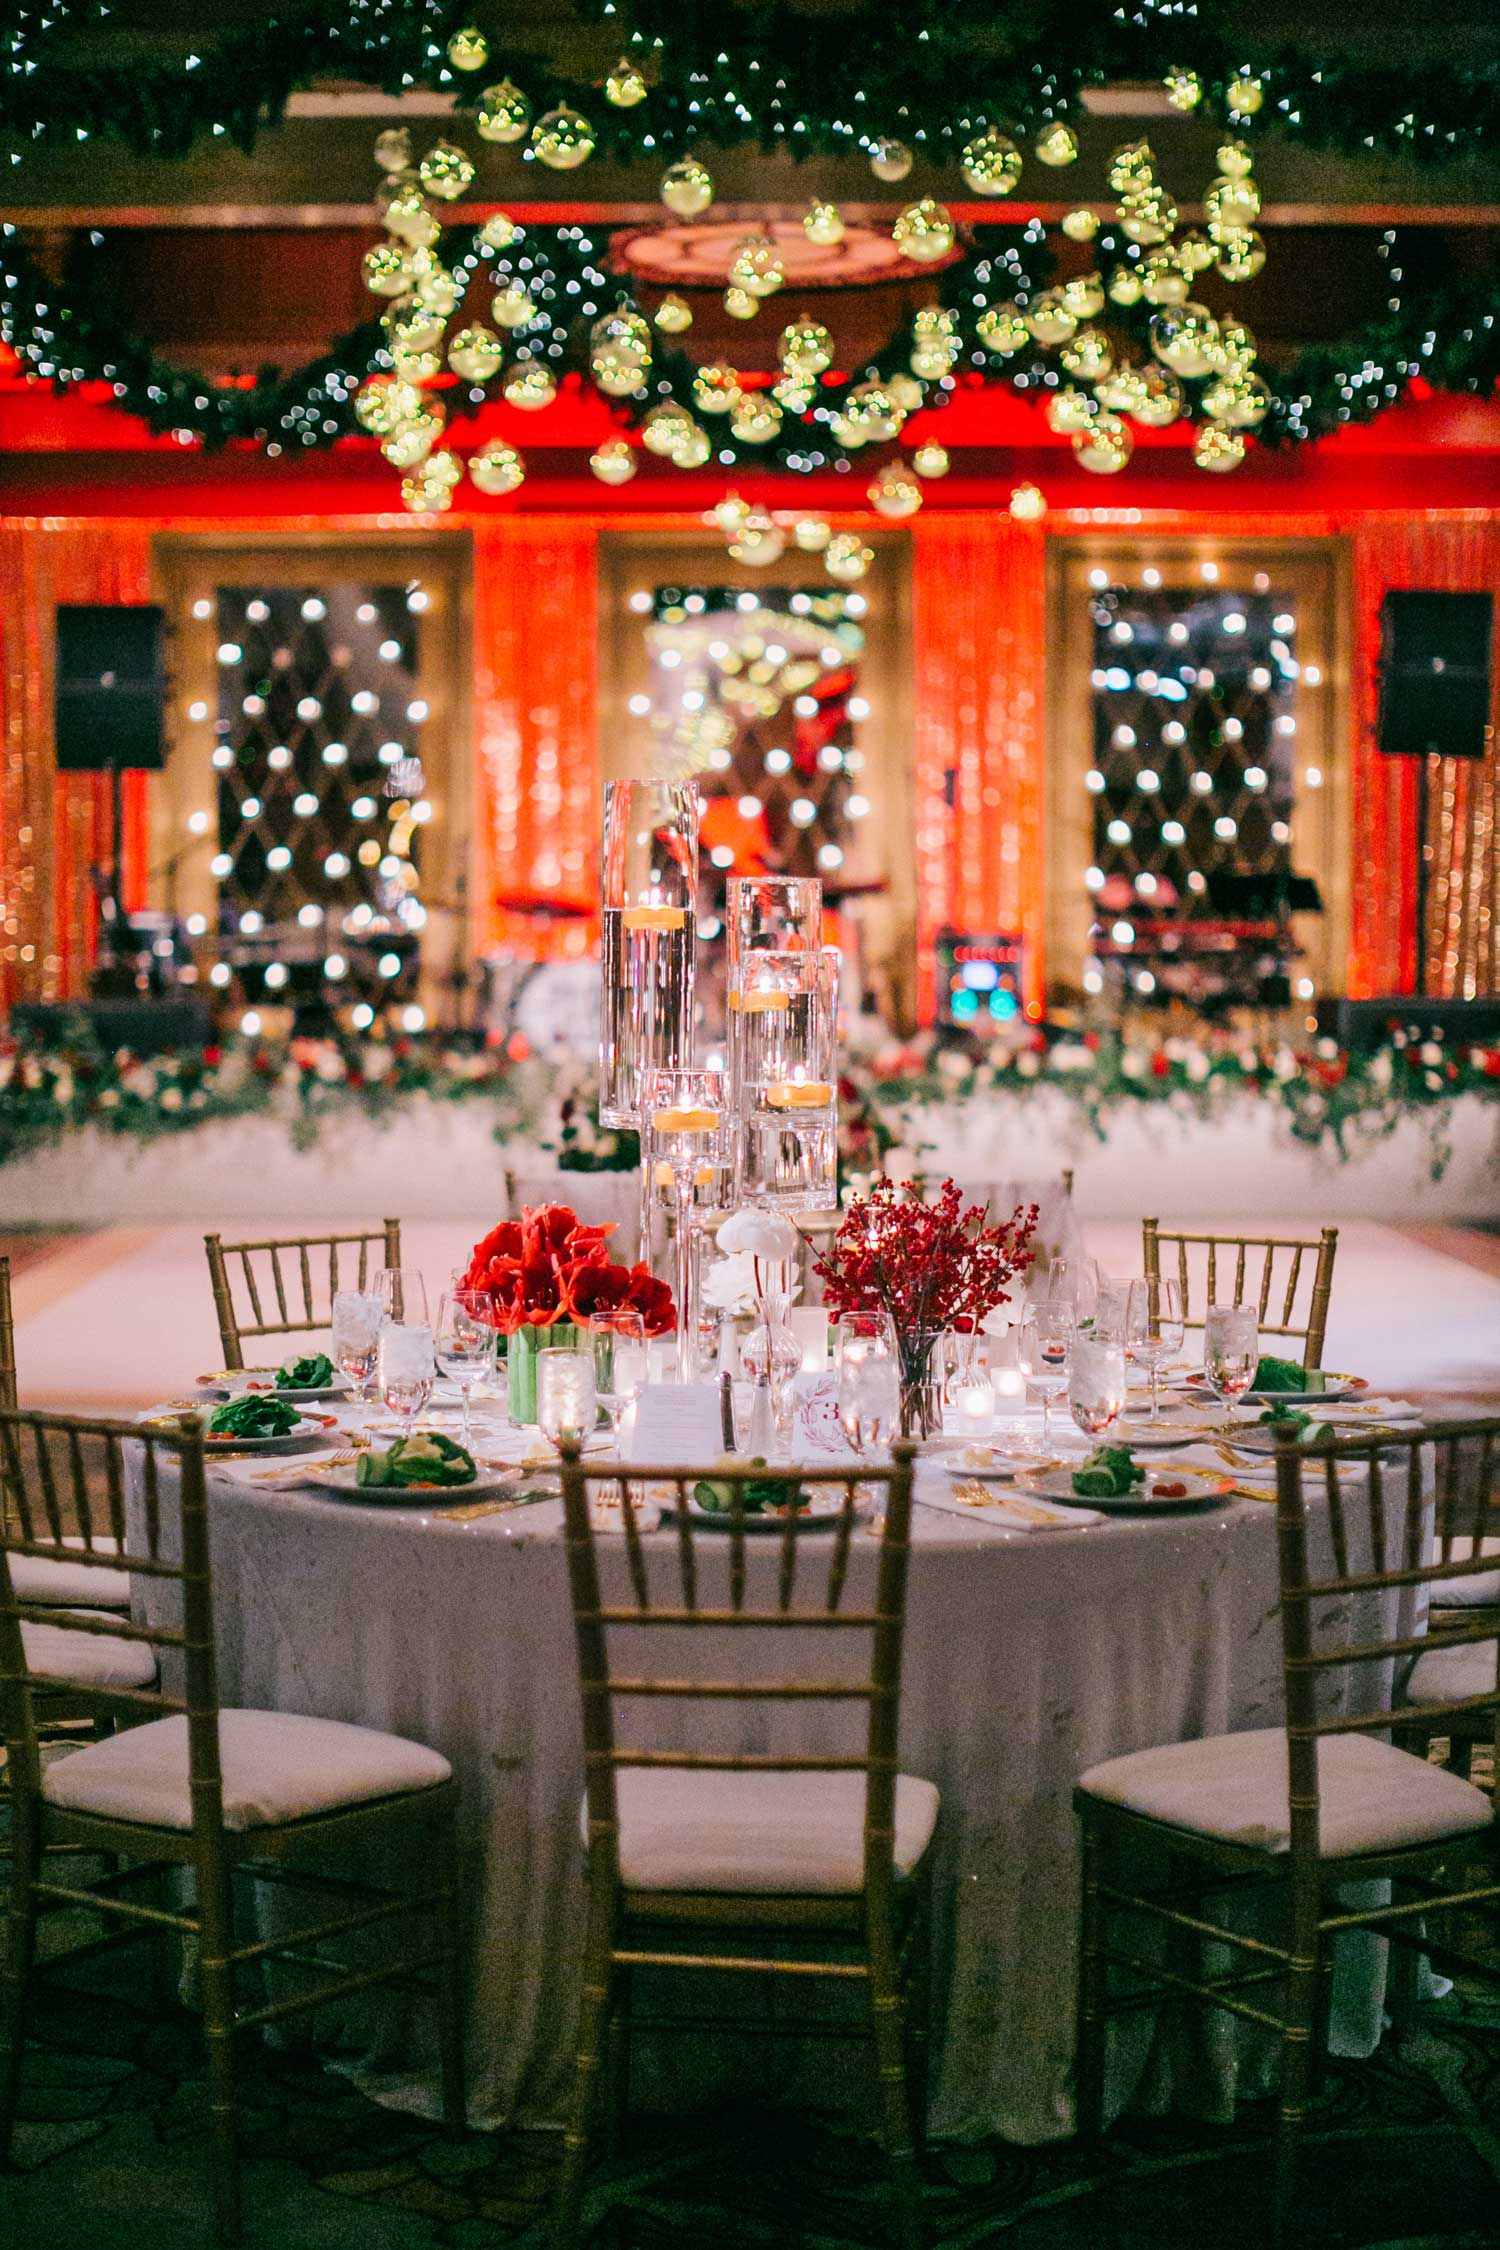 holiday wedding ideas decor red white green